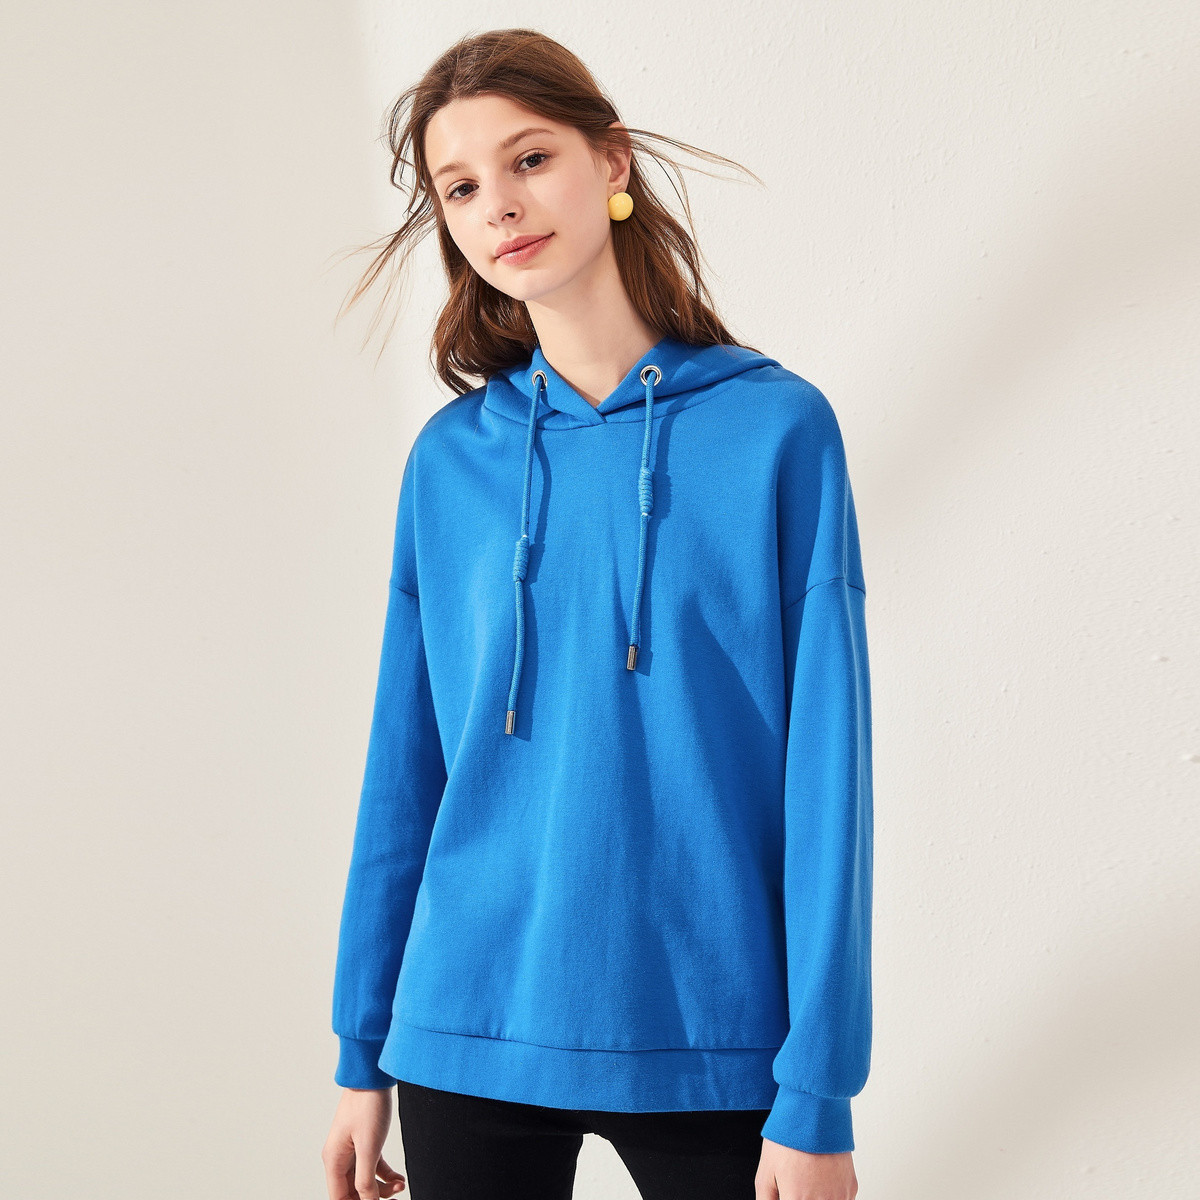 100% cotton  spring wear breathable french terry thin women hoodie